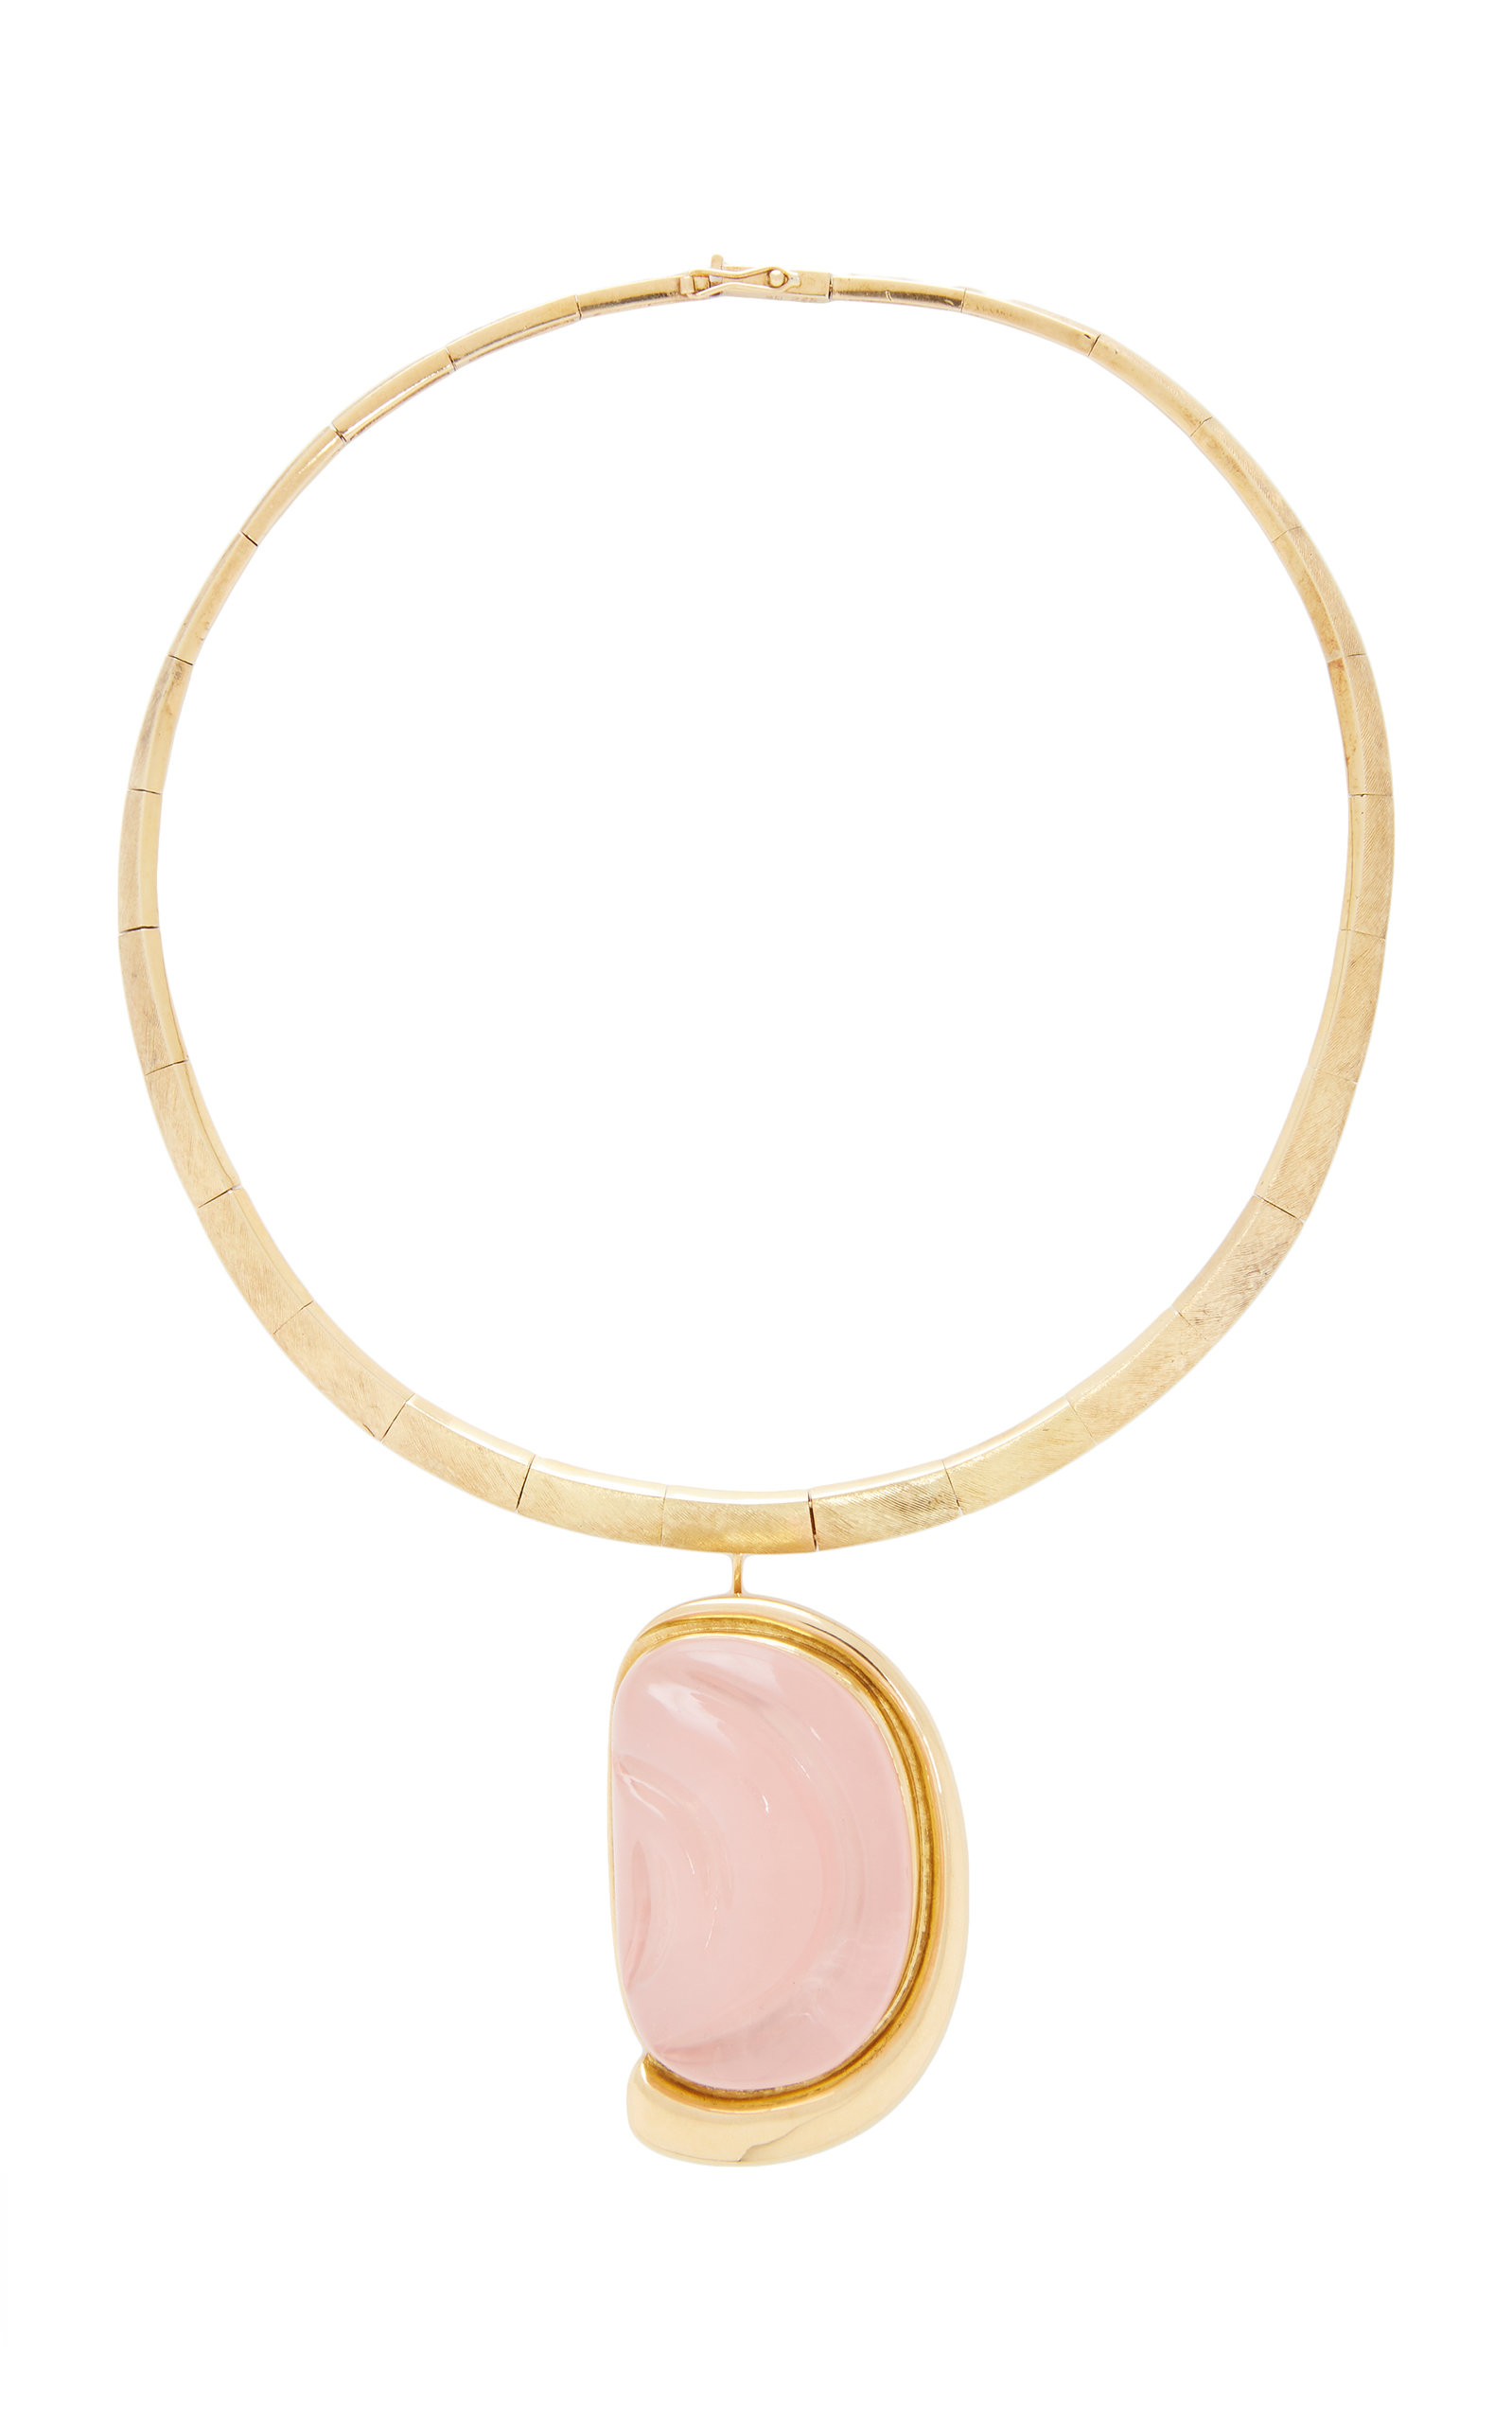 MAHNAZ COLLECTION LIMITED EDITION 18K GOLD AND FORMA LIVRE CARVED ROSE QUARTZ BROOCH PENDANT ON A TORQUE COLLAR BY HAR